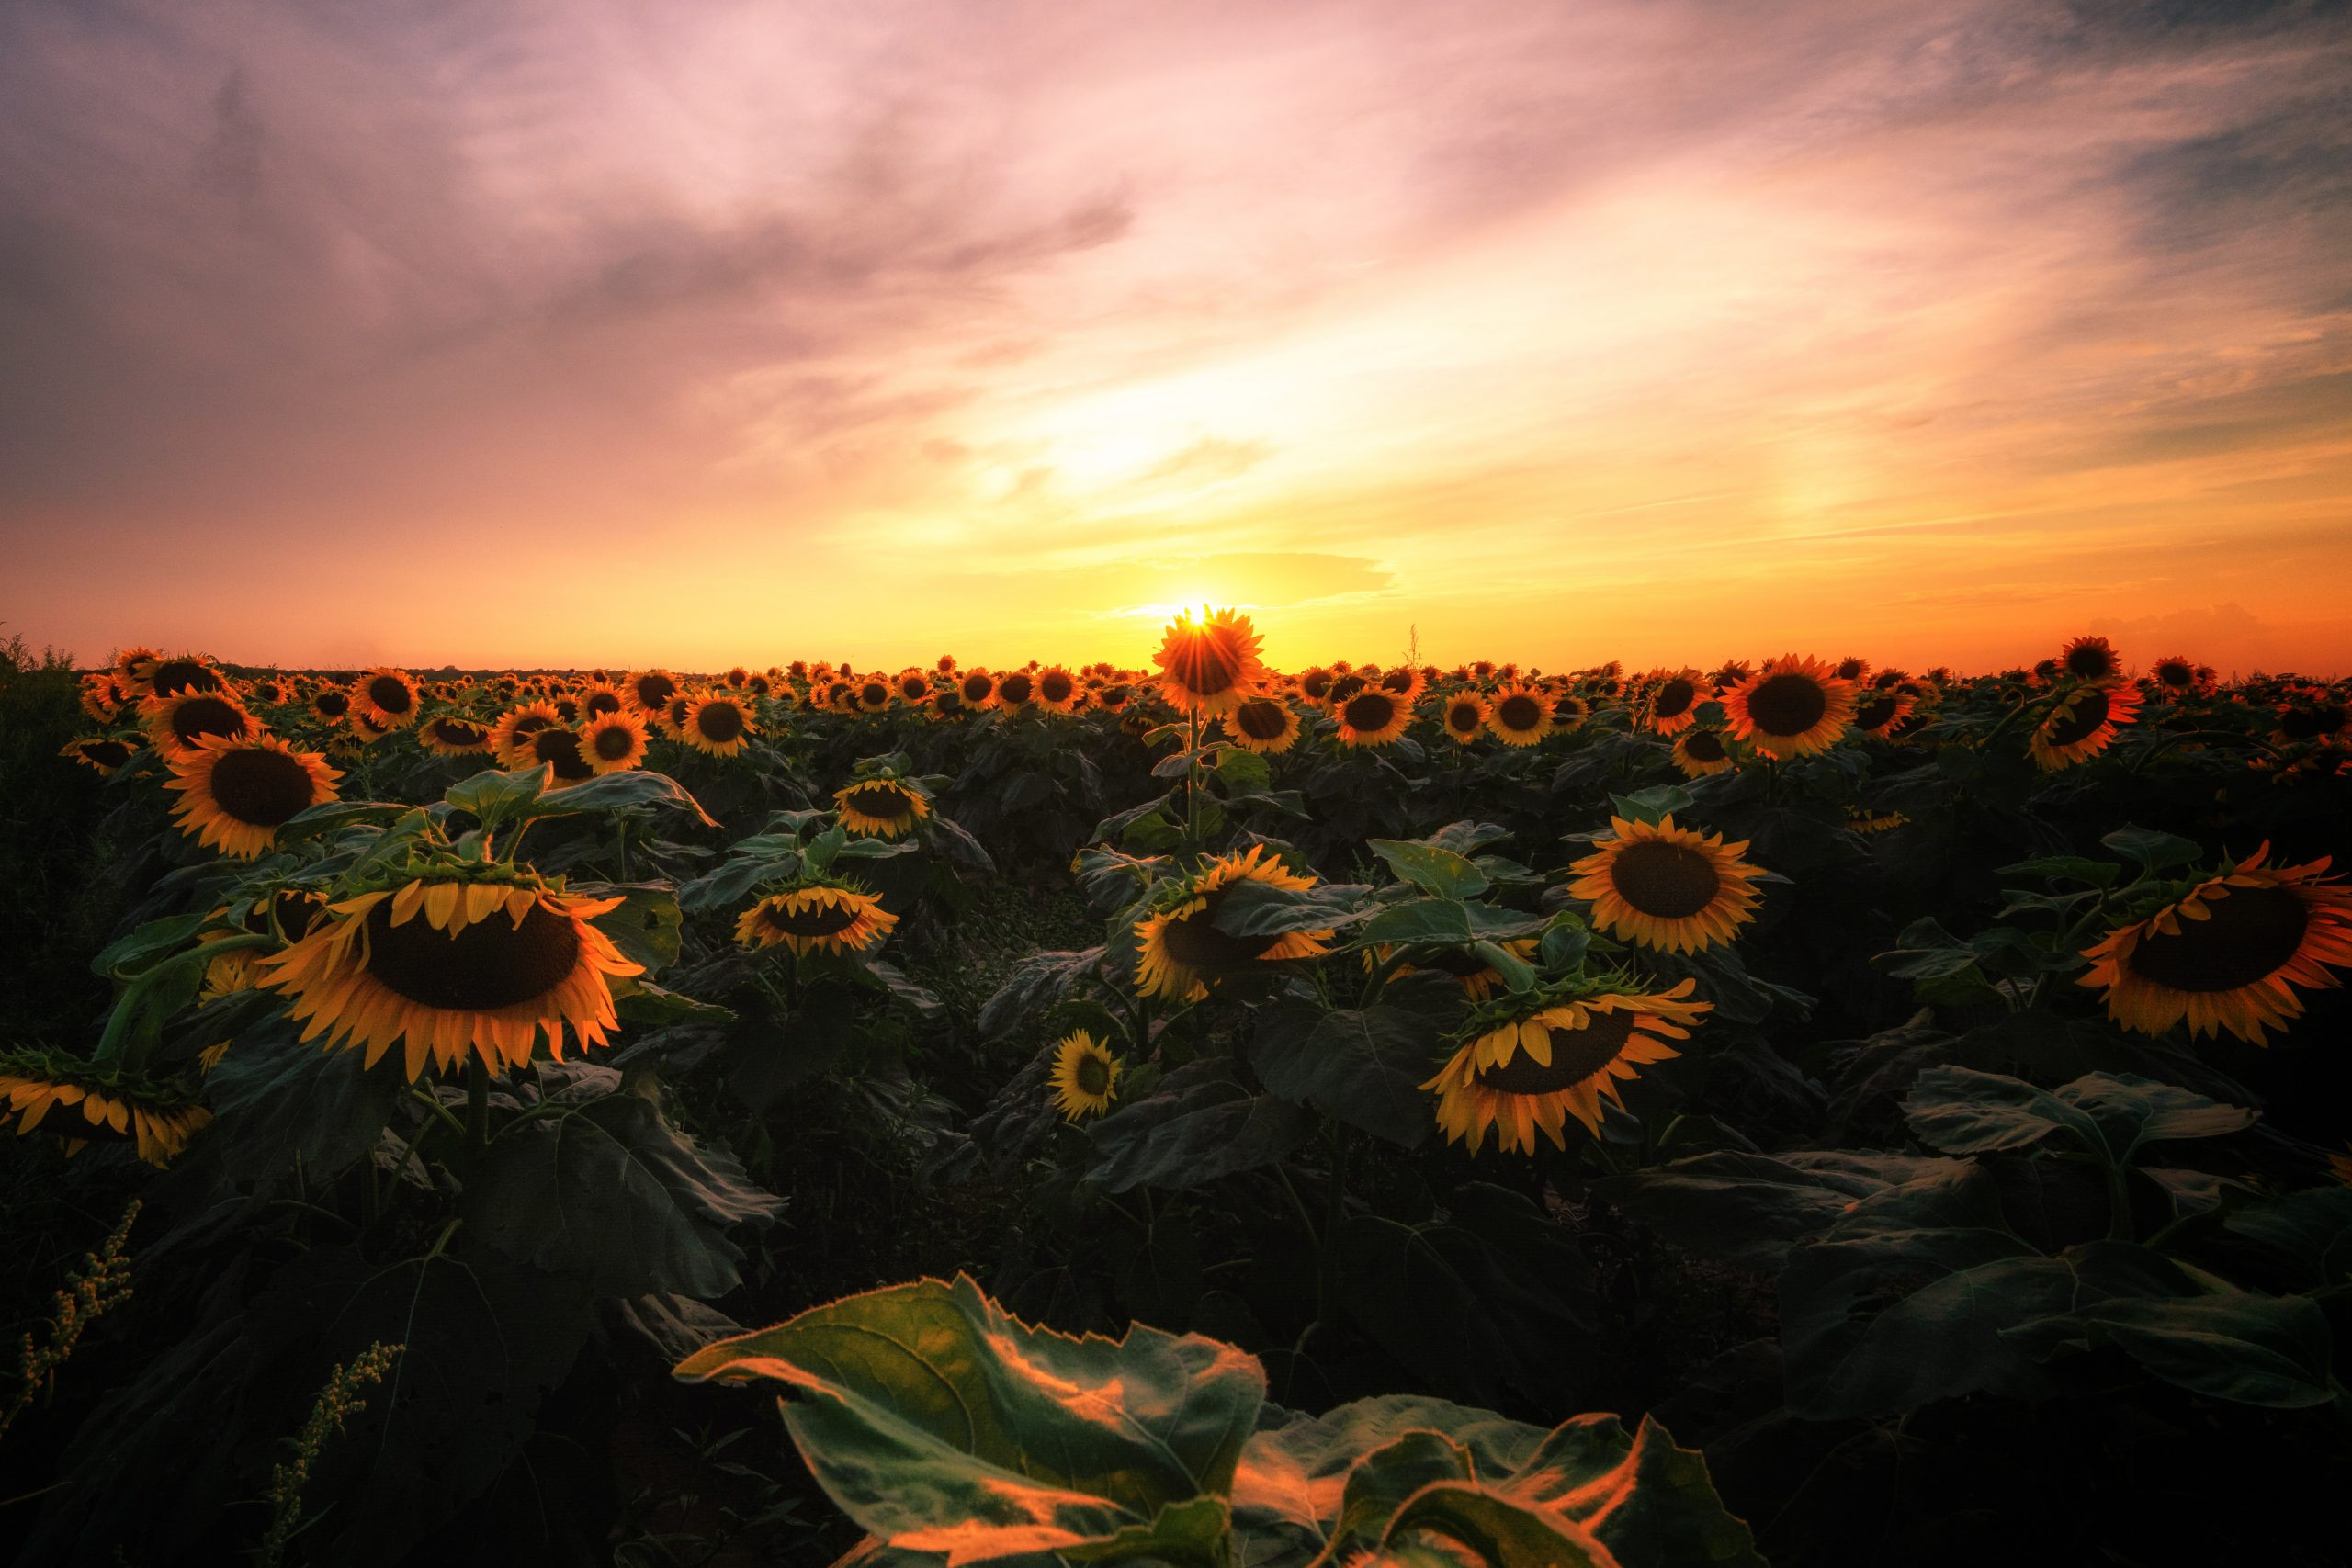 A field of sunflowers with a cloudy sunset